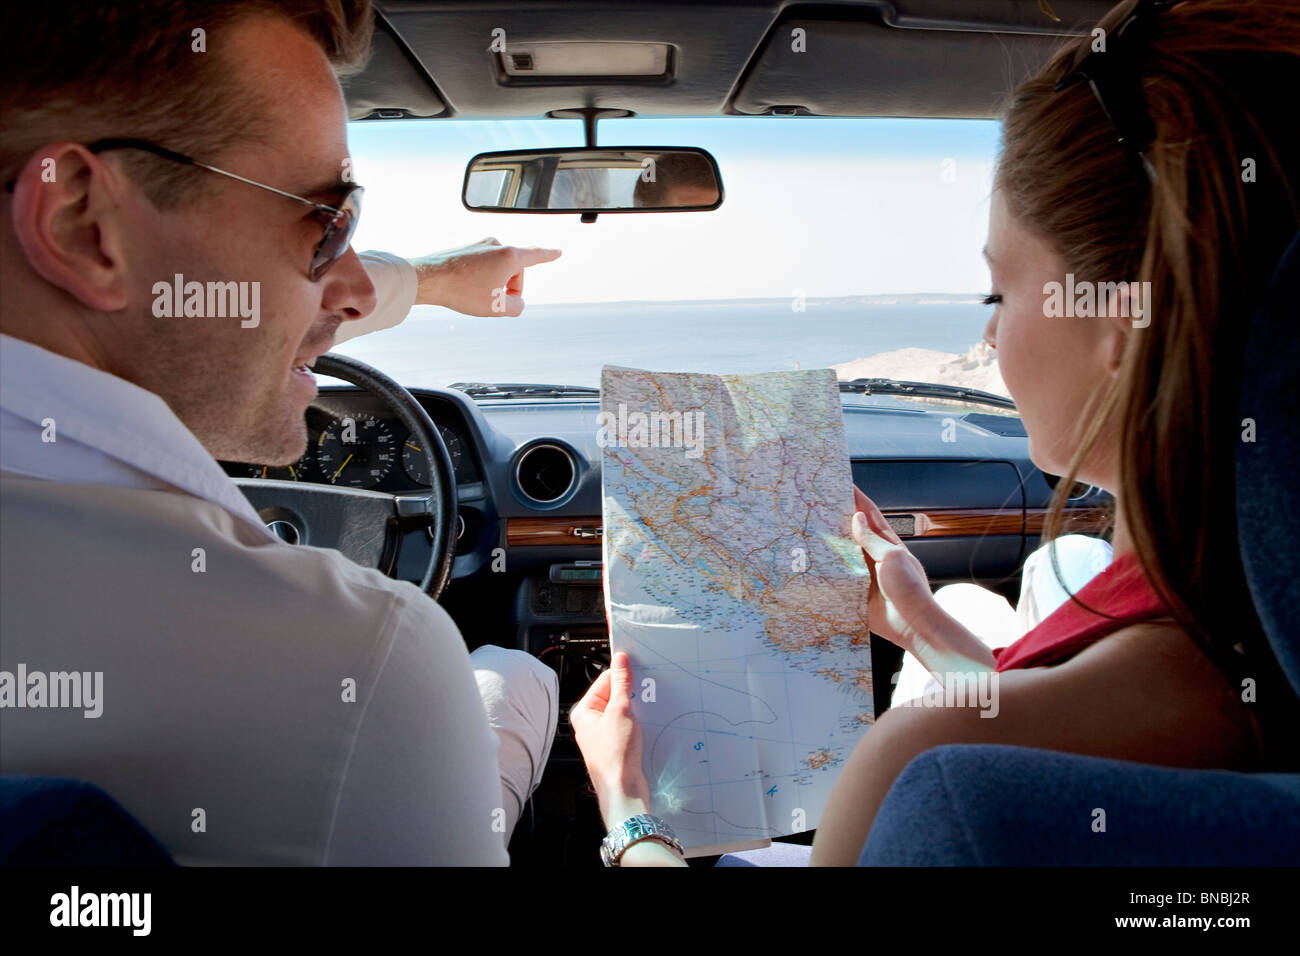 Couple looking at map in car by sea - Stock Image